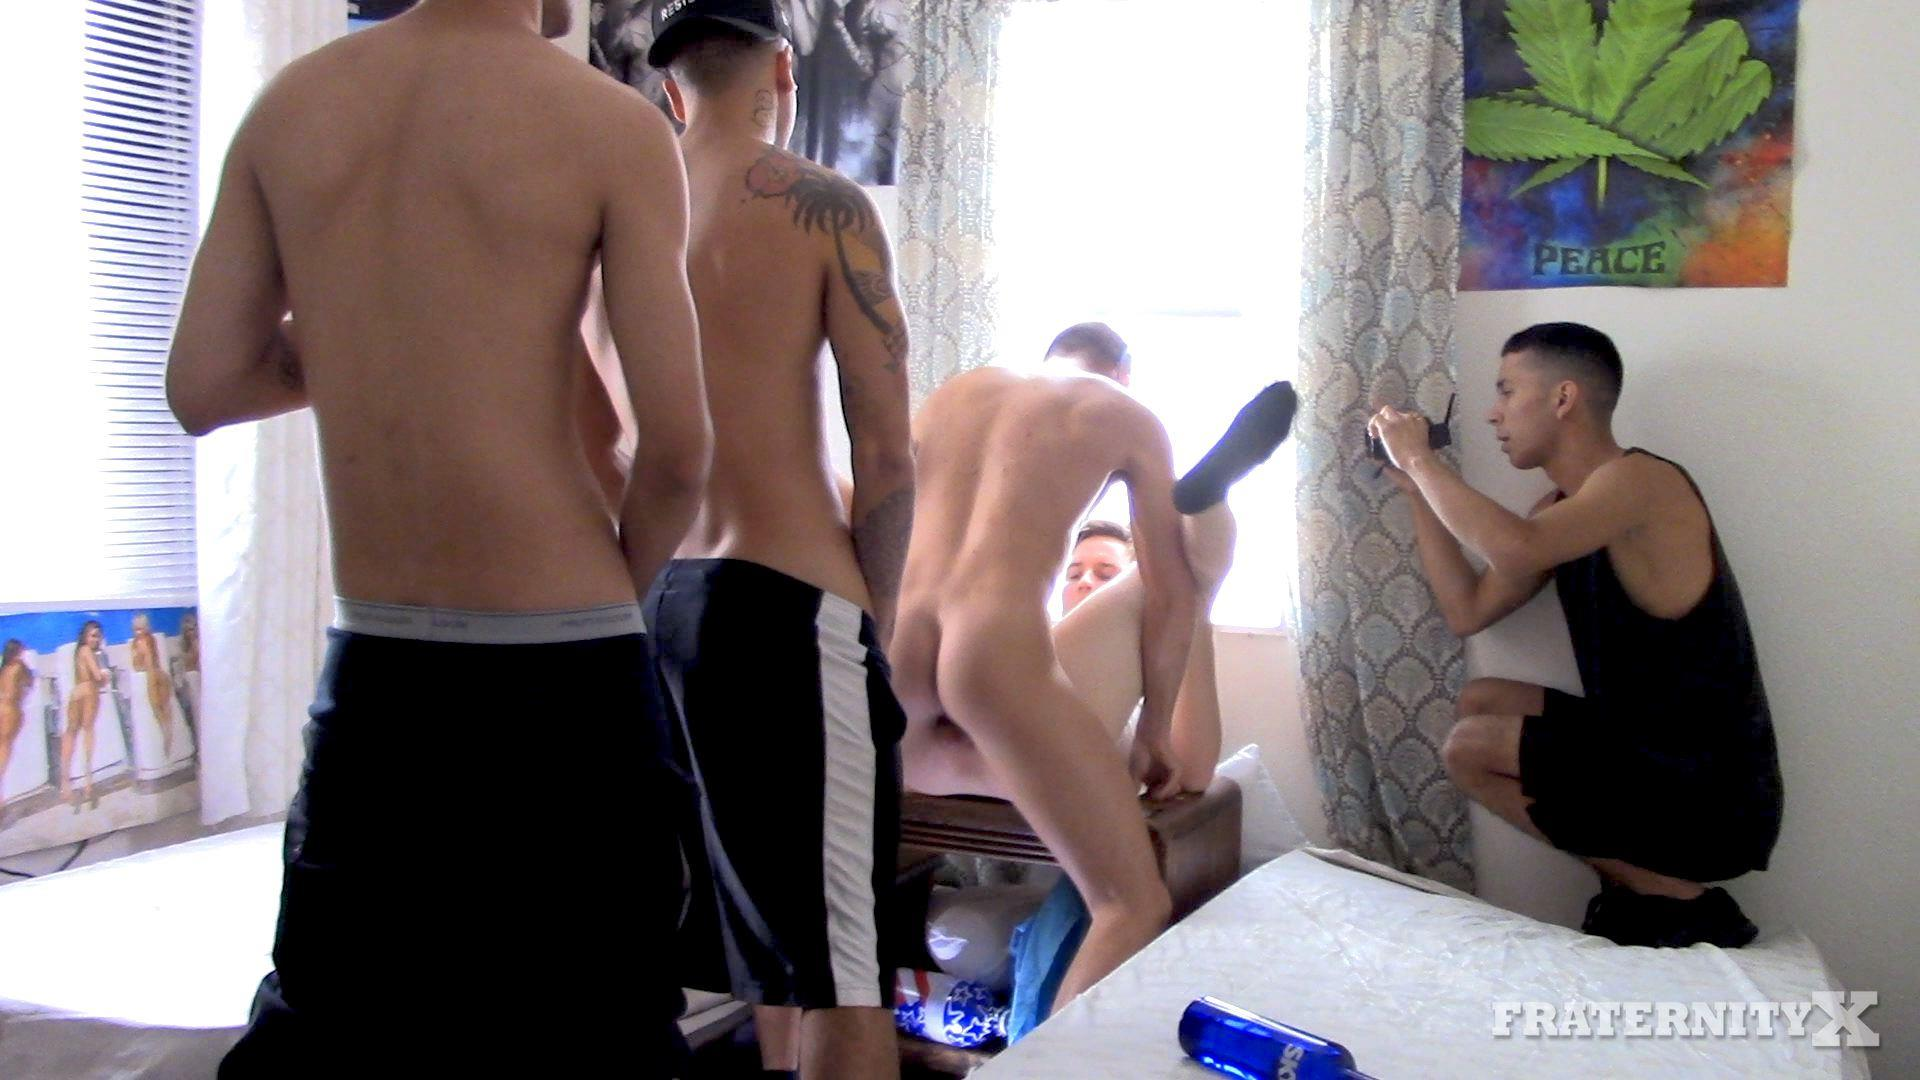 Fraternity-X-Naked-Frat-Guys-Gay-Bareback-Sex-Video-06 Drunk Naked Frat Boy Takes Five Raw Cocks Up The Ass